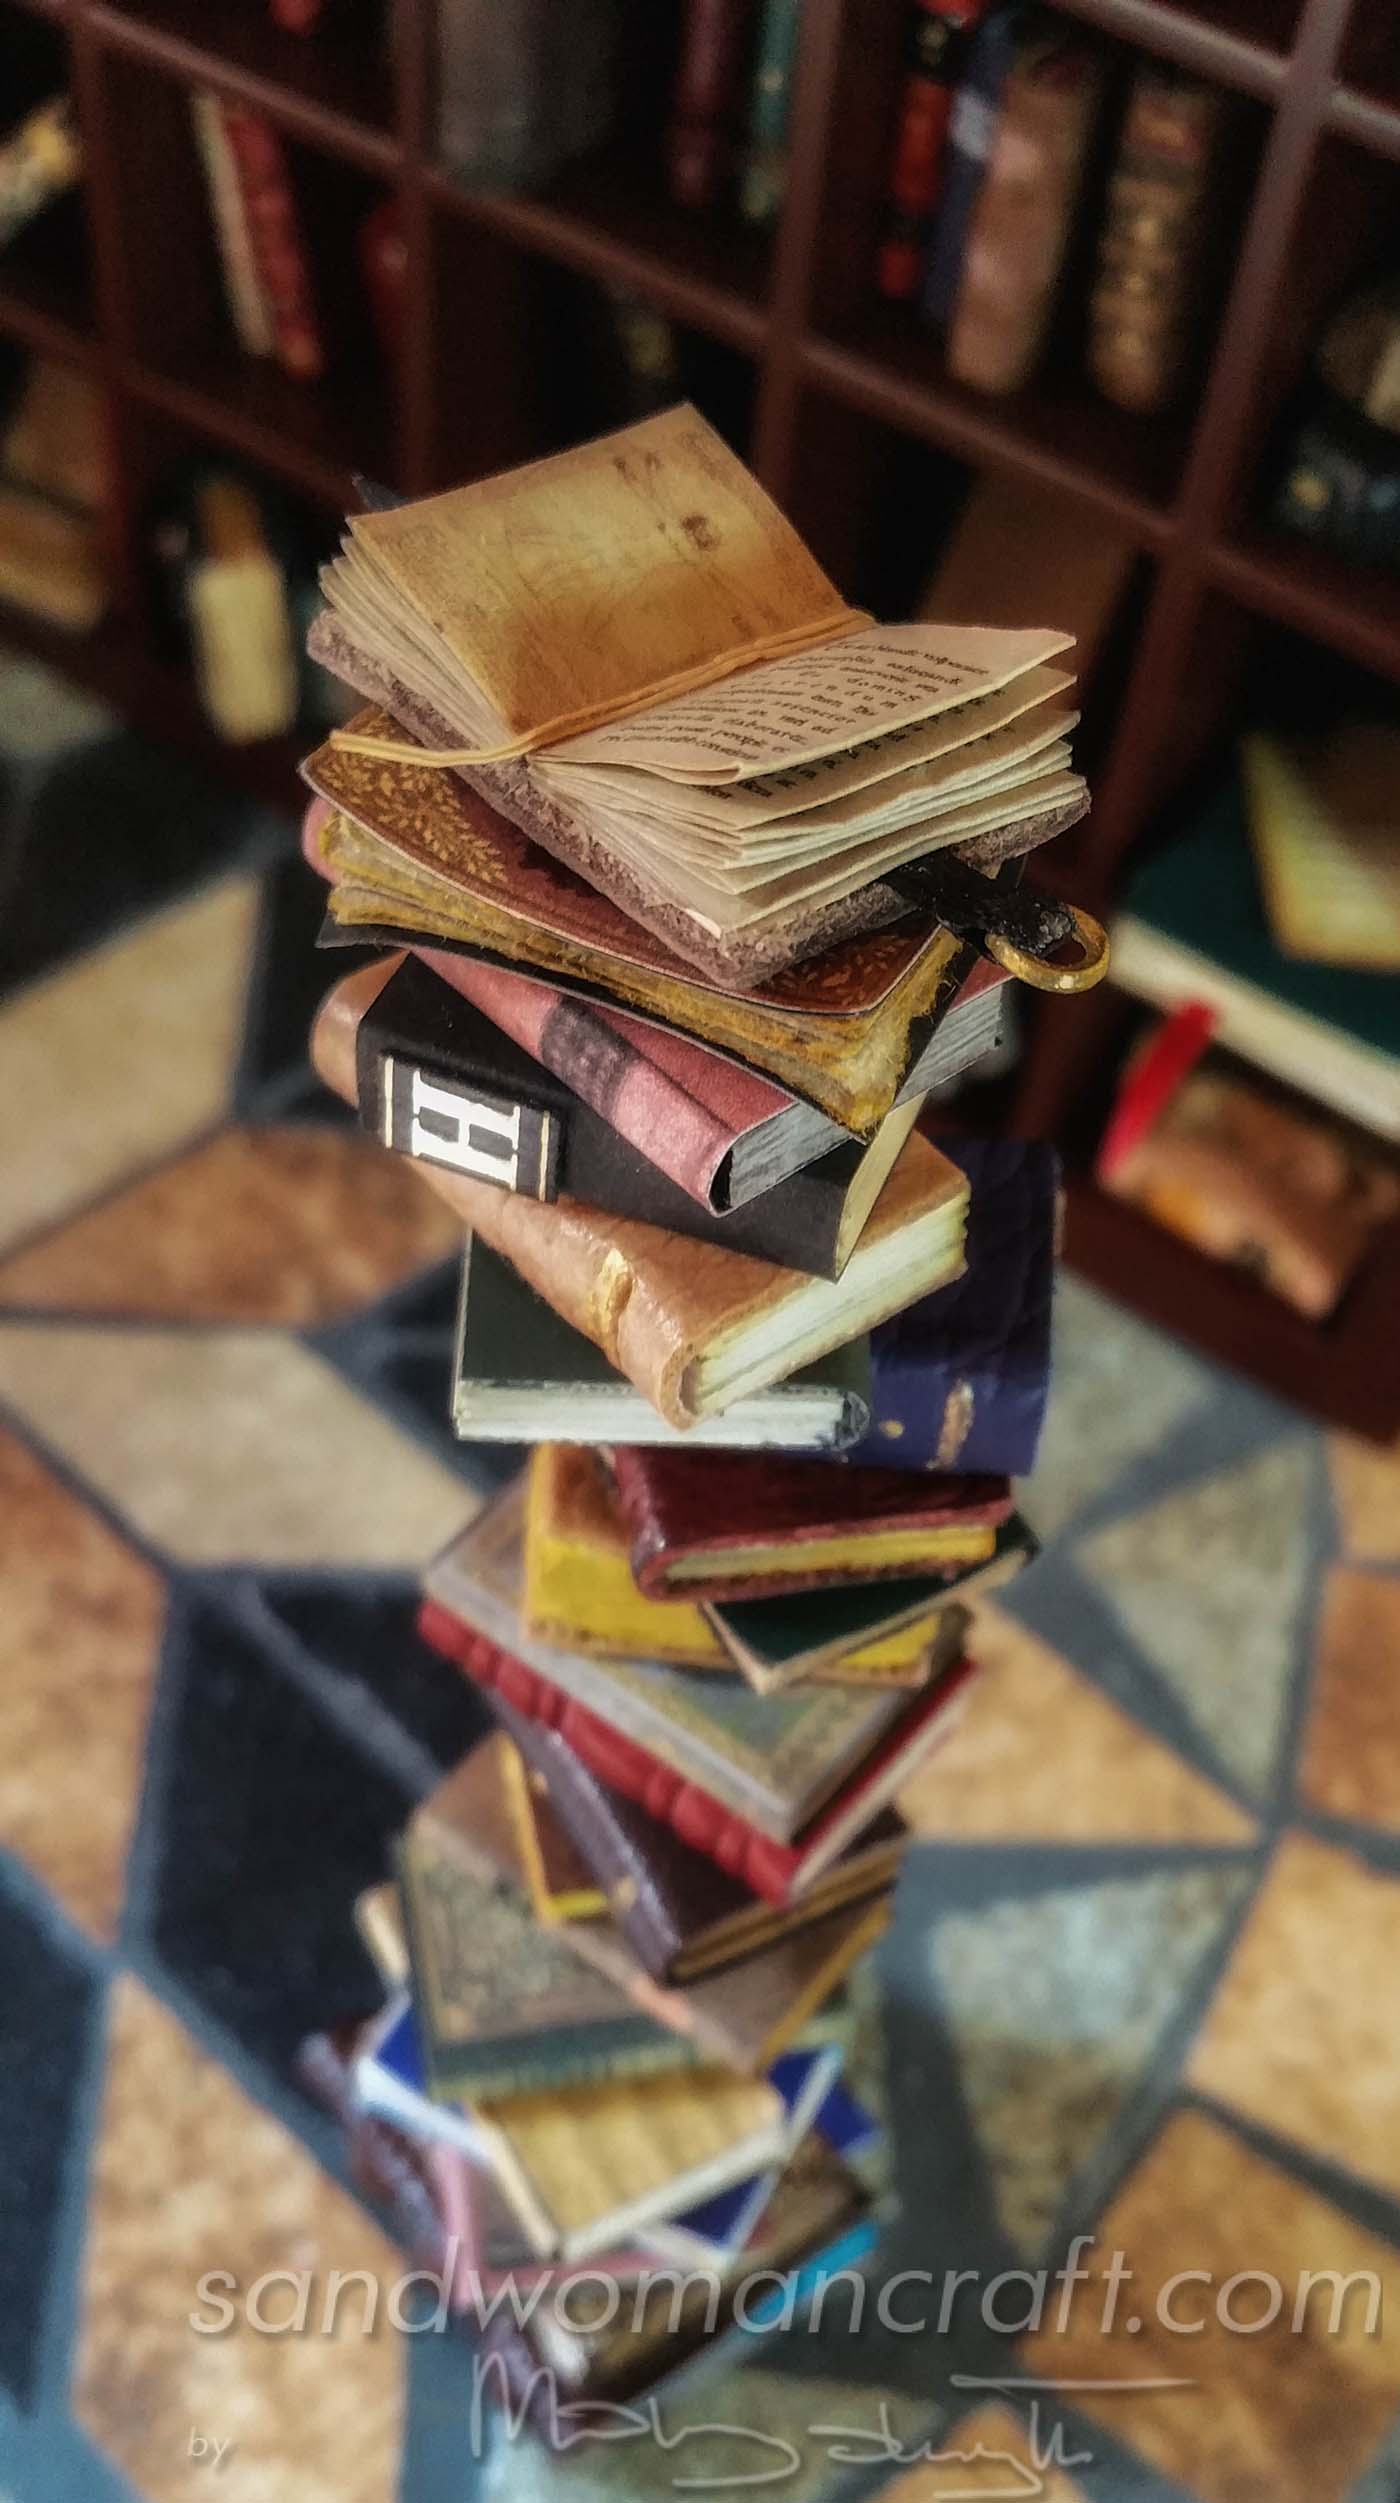 Miniature book stack with Da Vinci open book at the top